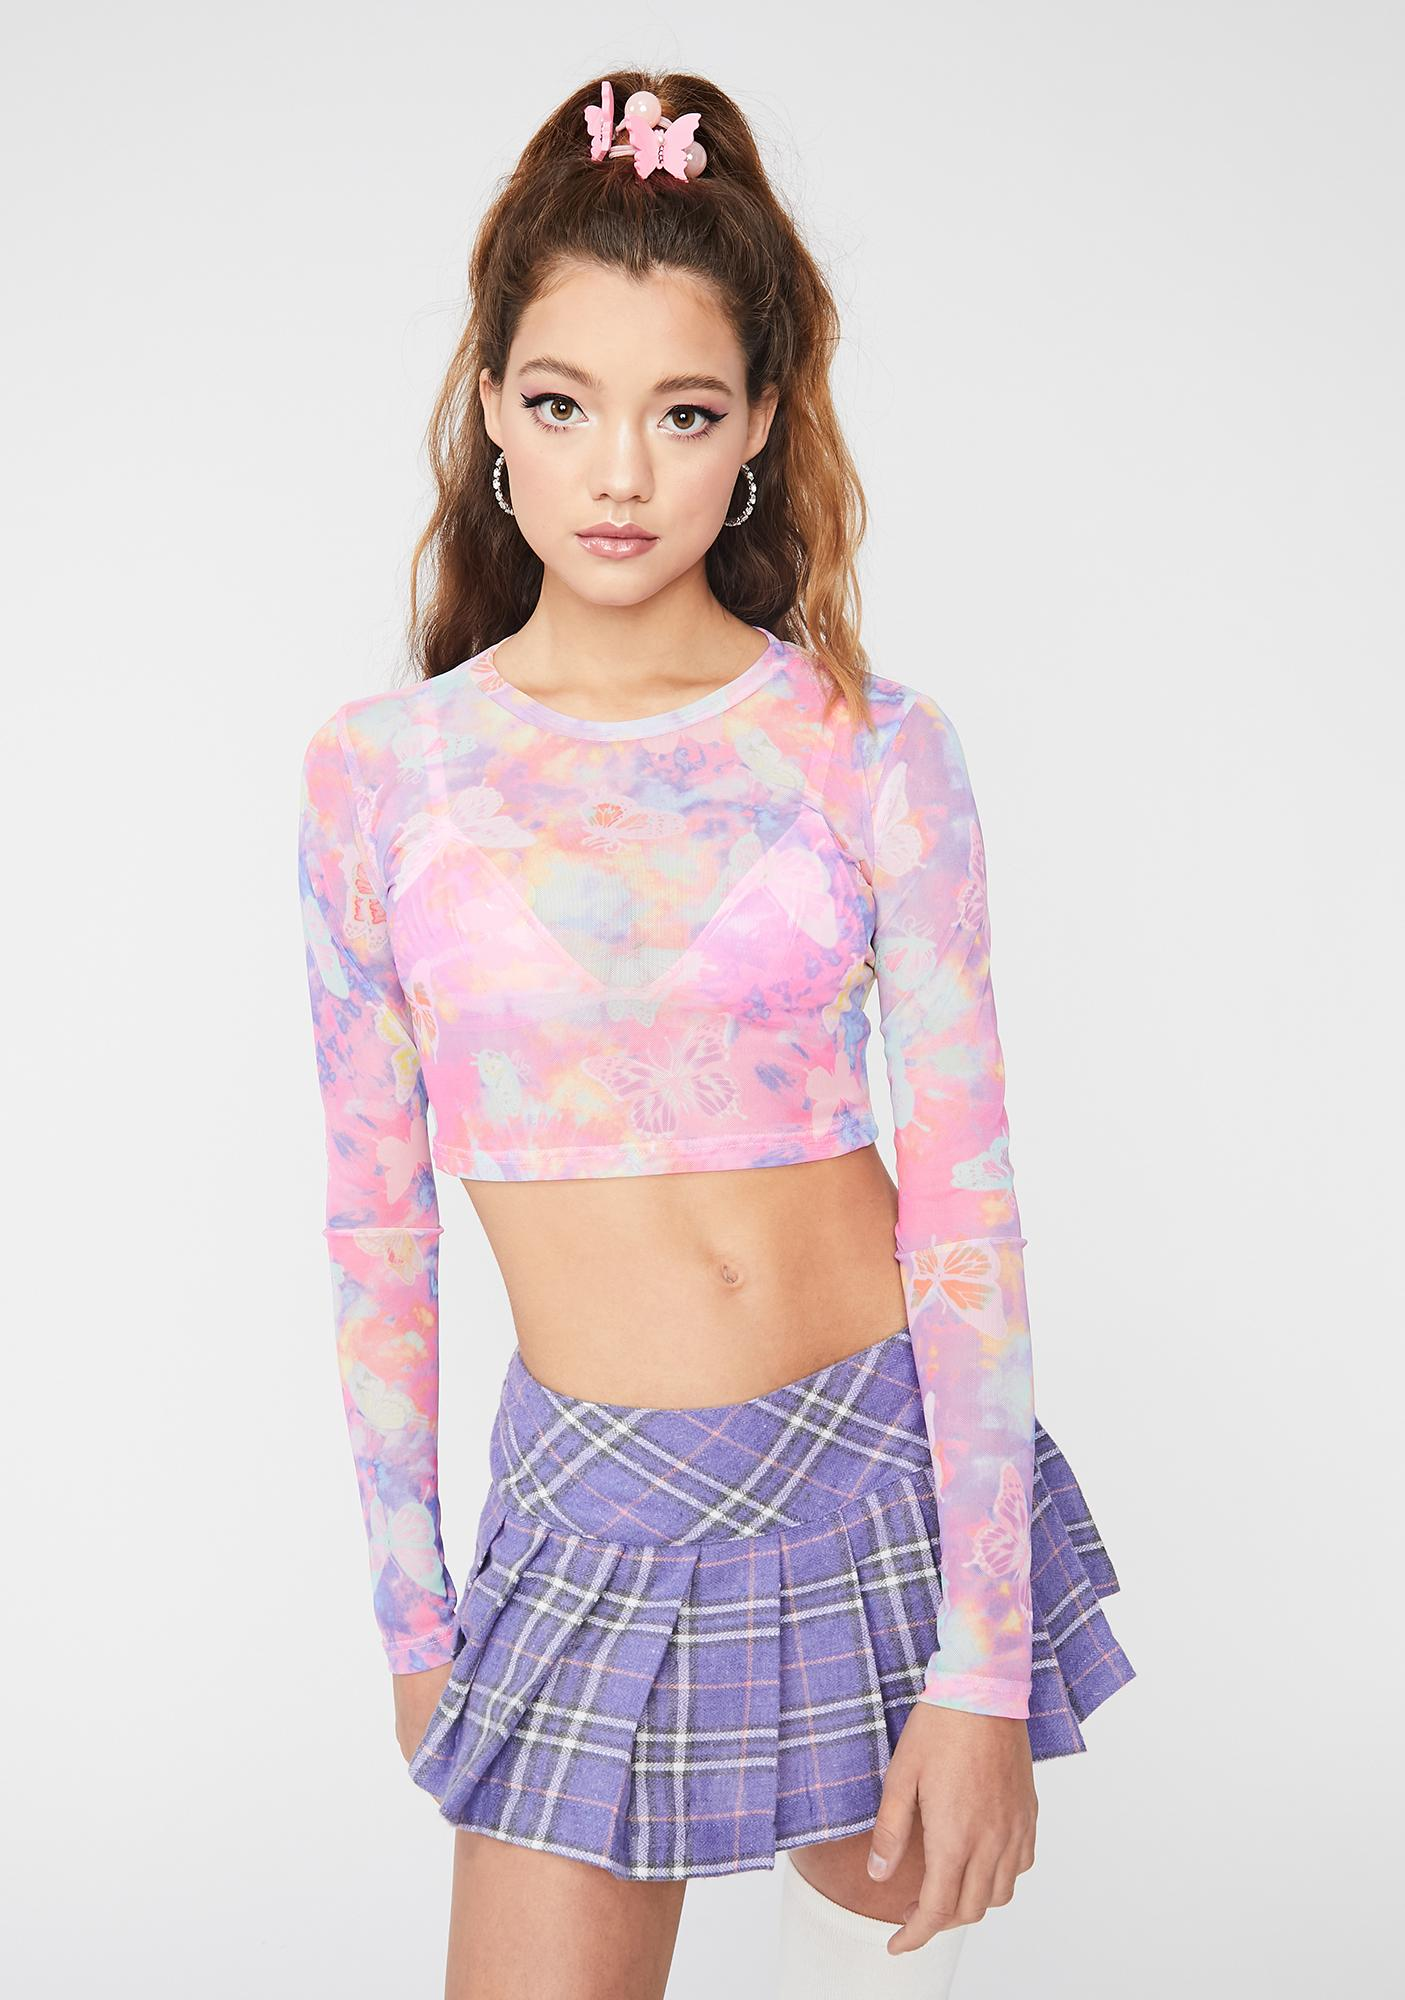 Psychedelic Butterfly Mesh Crop Top